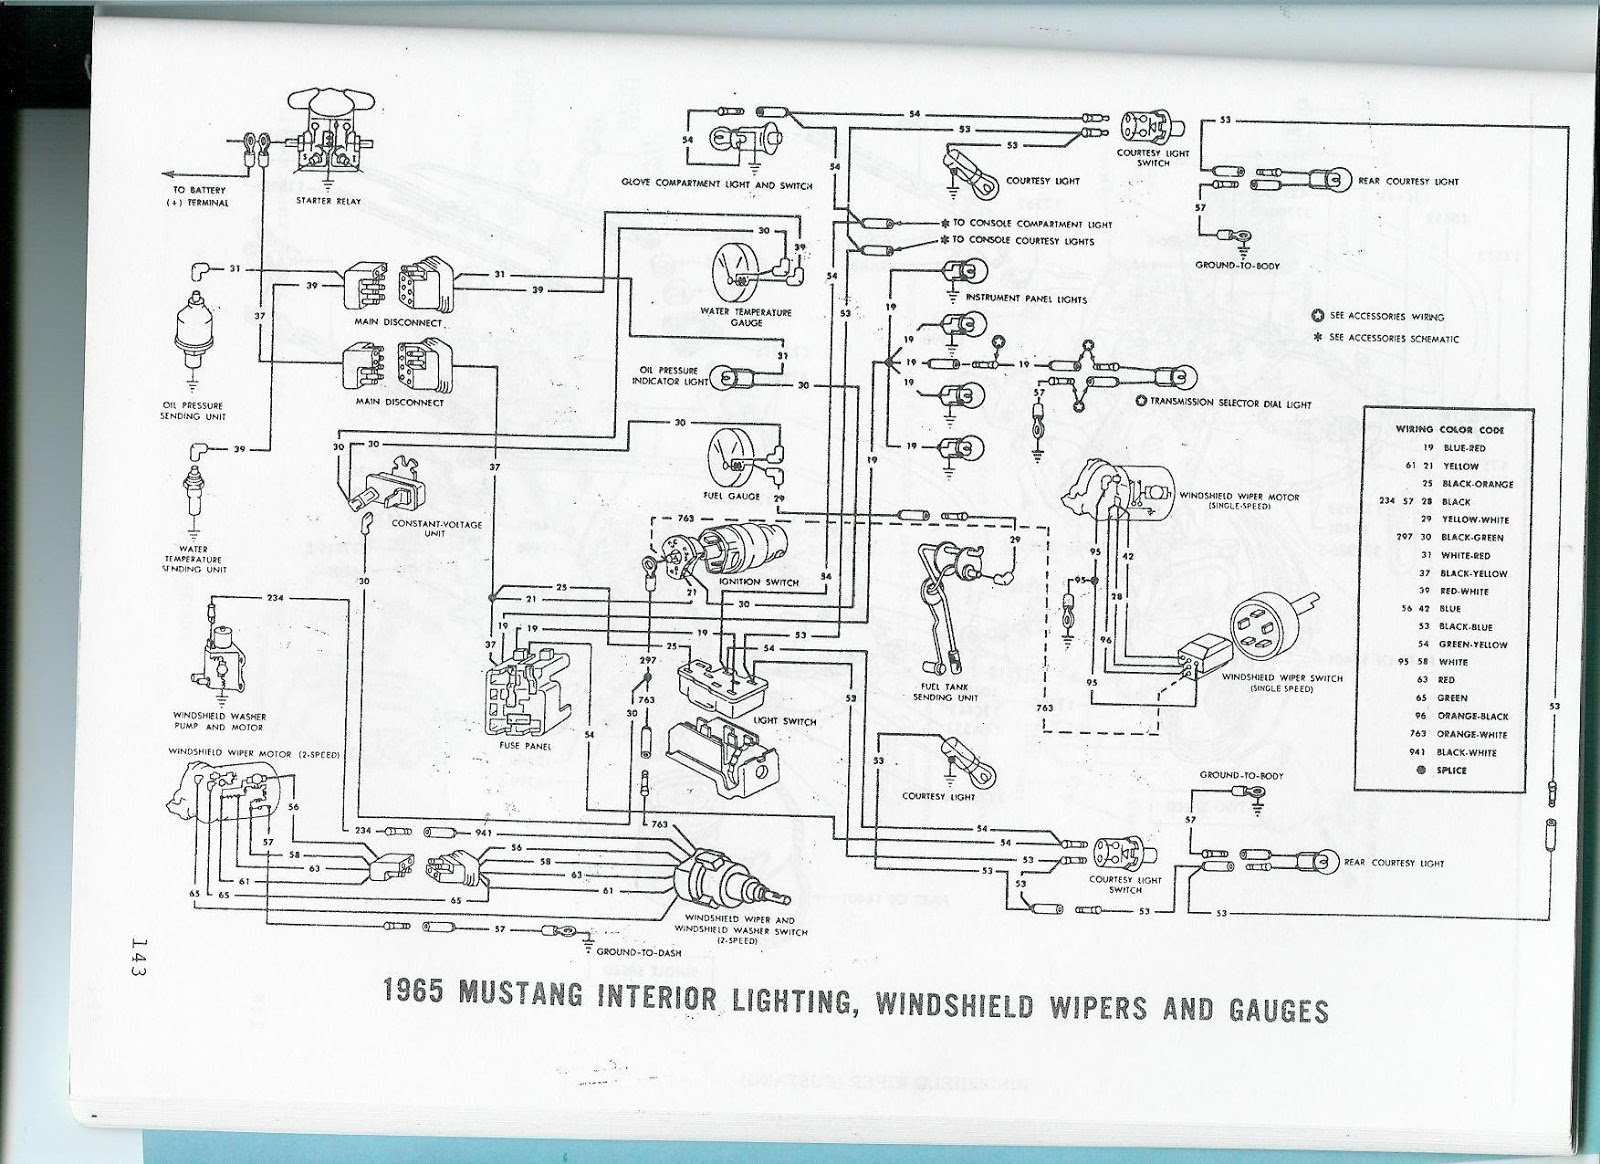 2008 Ford Mustang Fuse Diagram Auto Electrical Wiring Box The Care And Feeding Of Ponies 1965 Diagrams